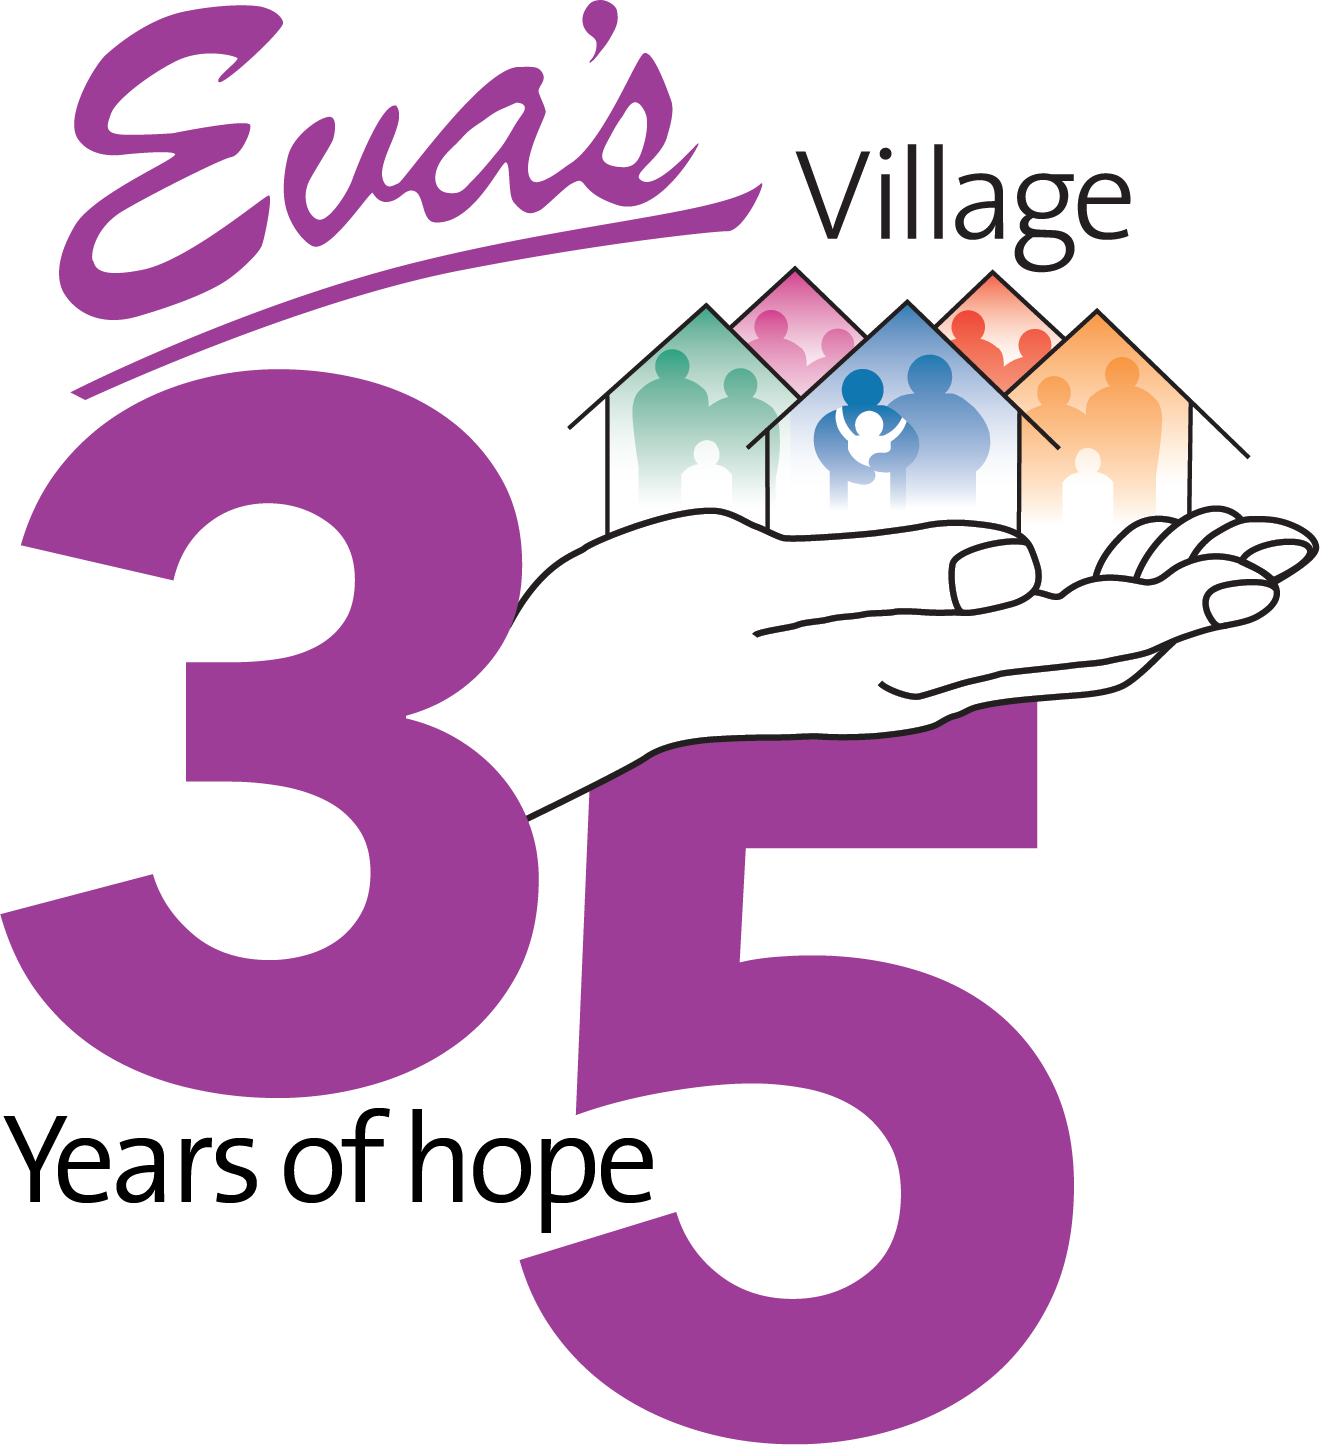 Collaboration With Local College Benefits Eva's Village